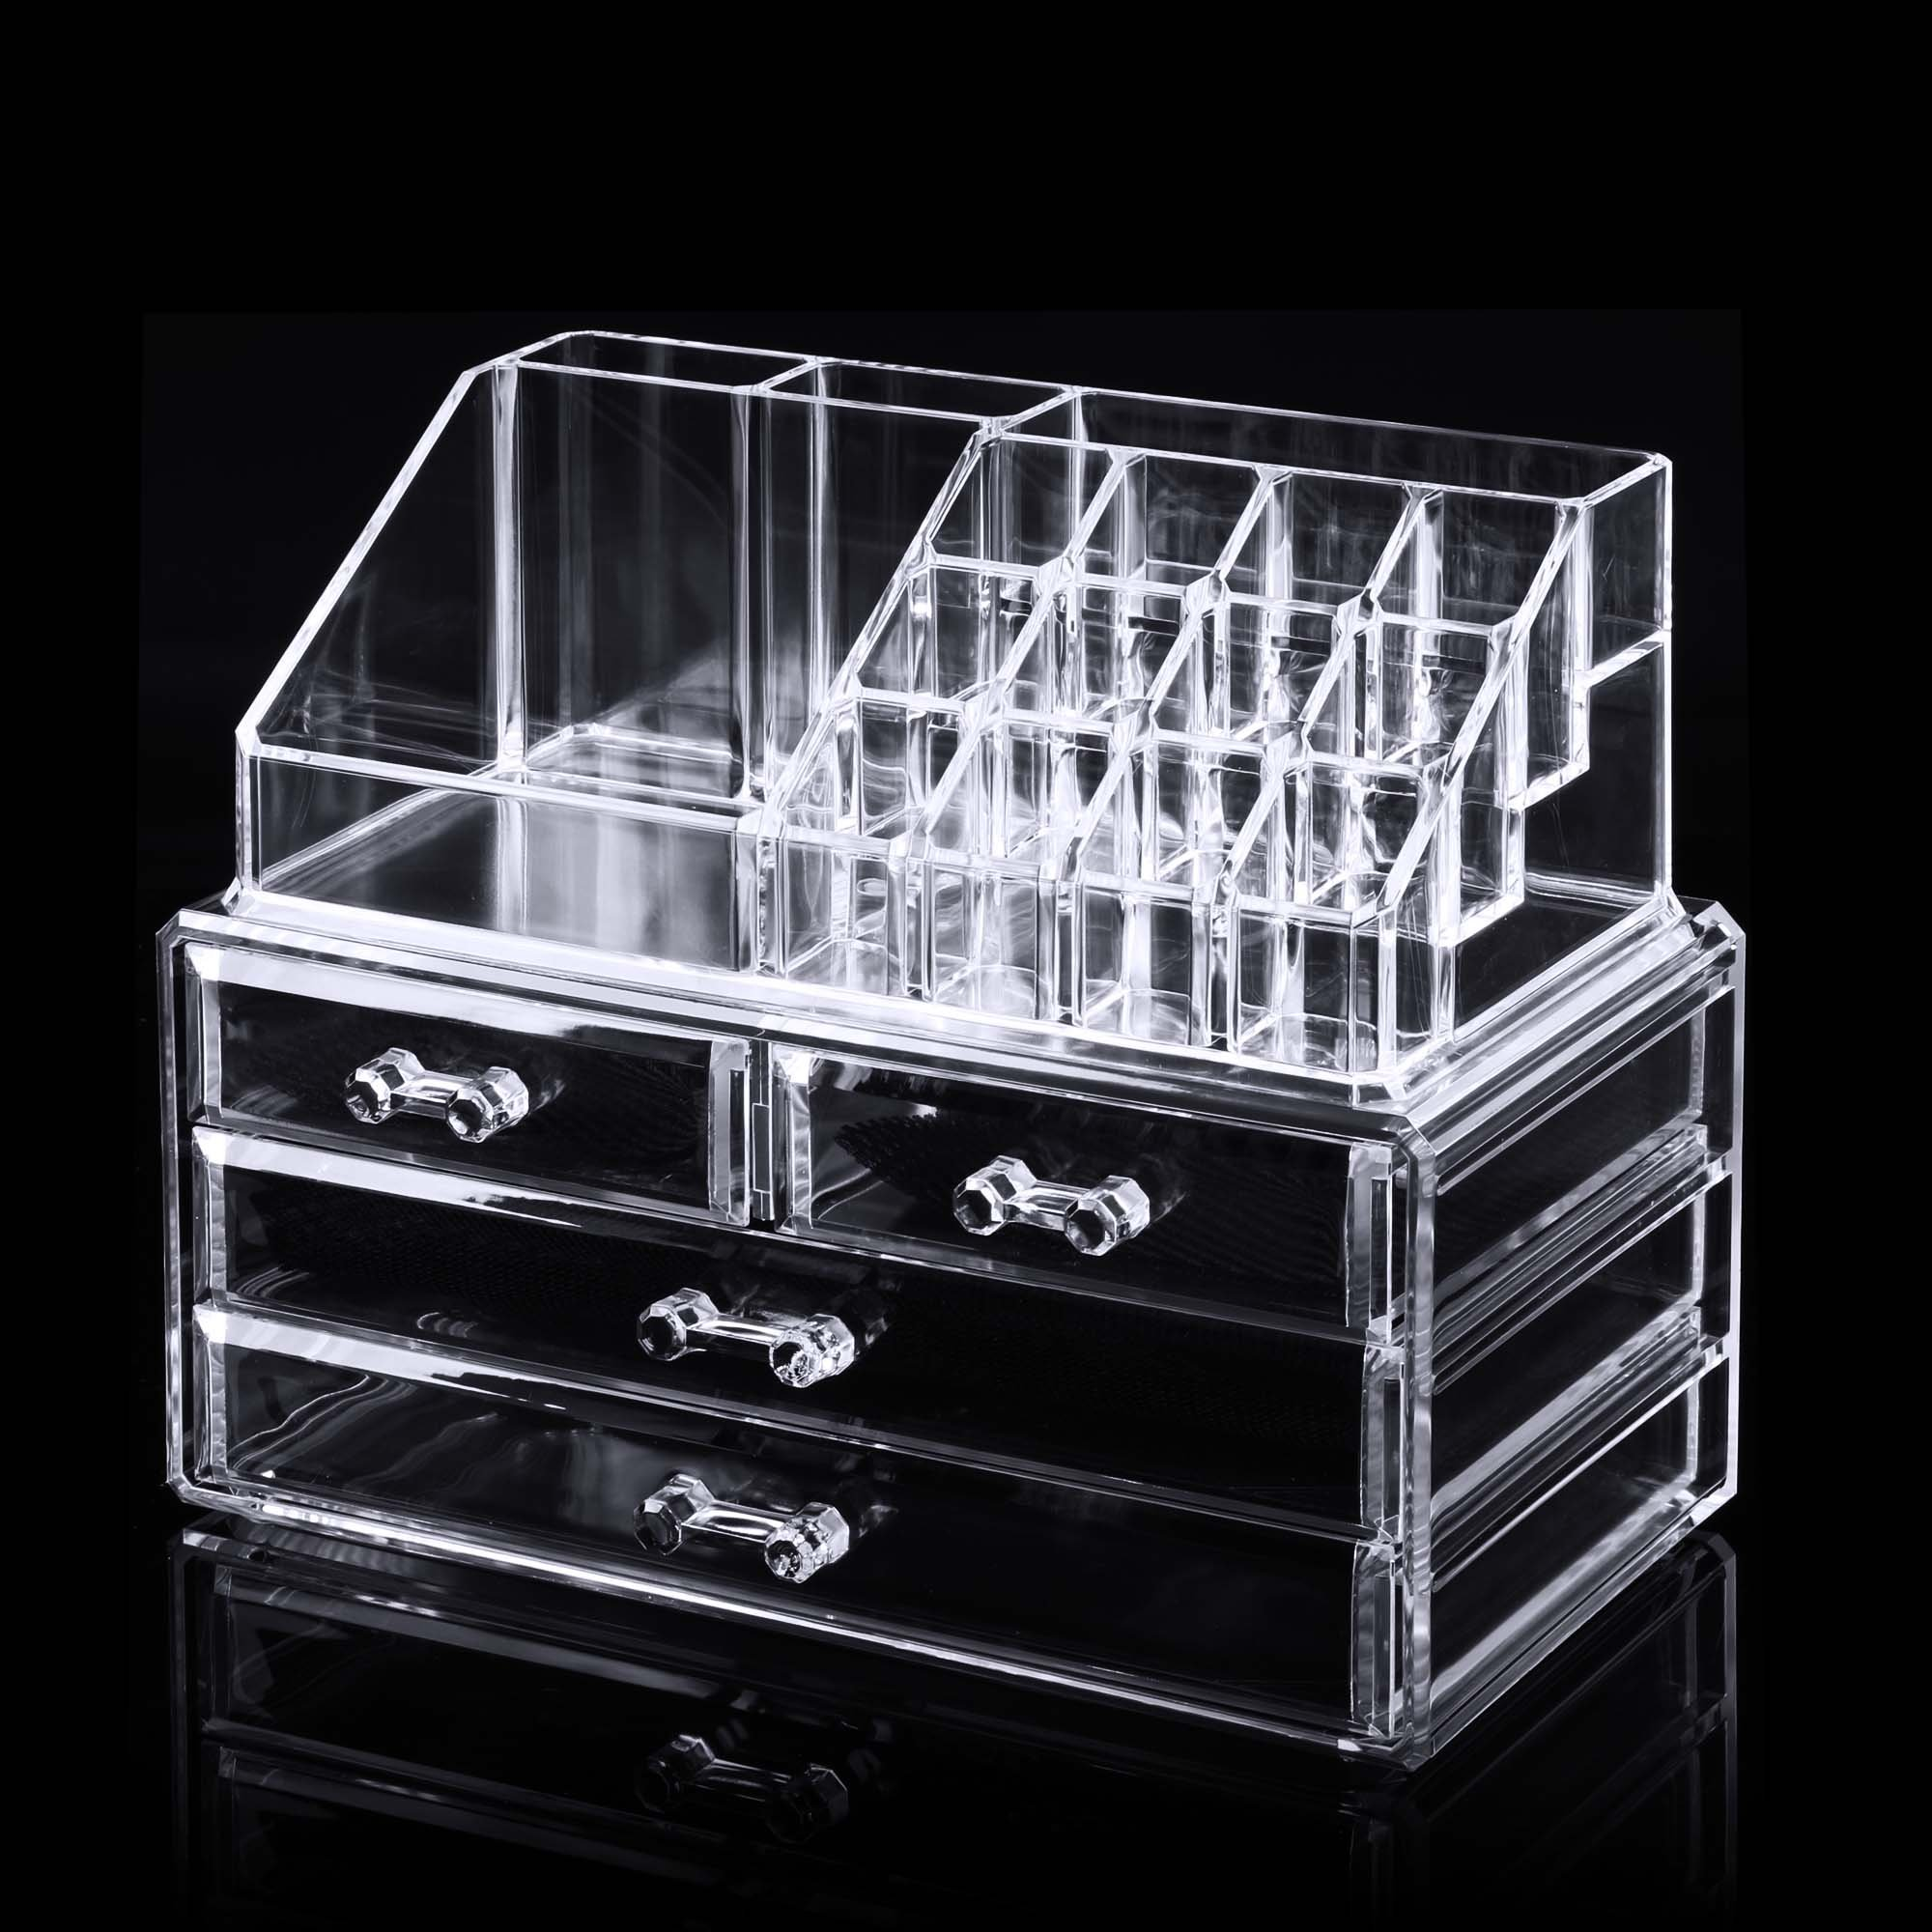 Flagup Makeup Organizer 4 Drawers Acrylic Jewelry Cosmetic Storage Display Box Case for Bedroom Bathroom